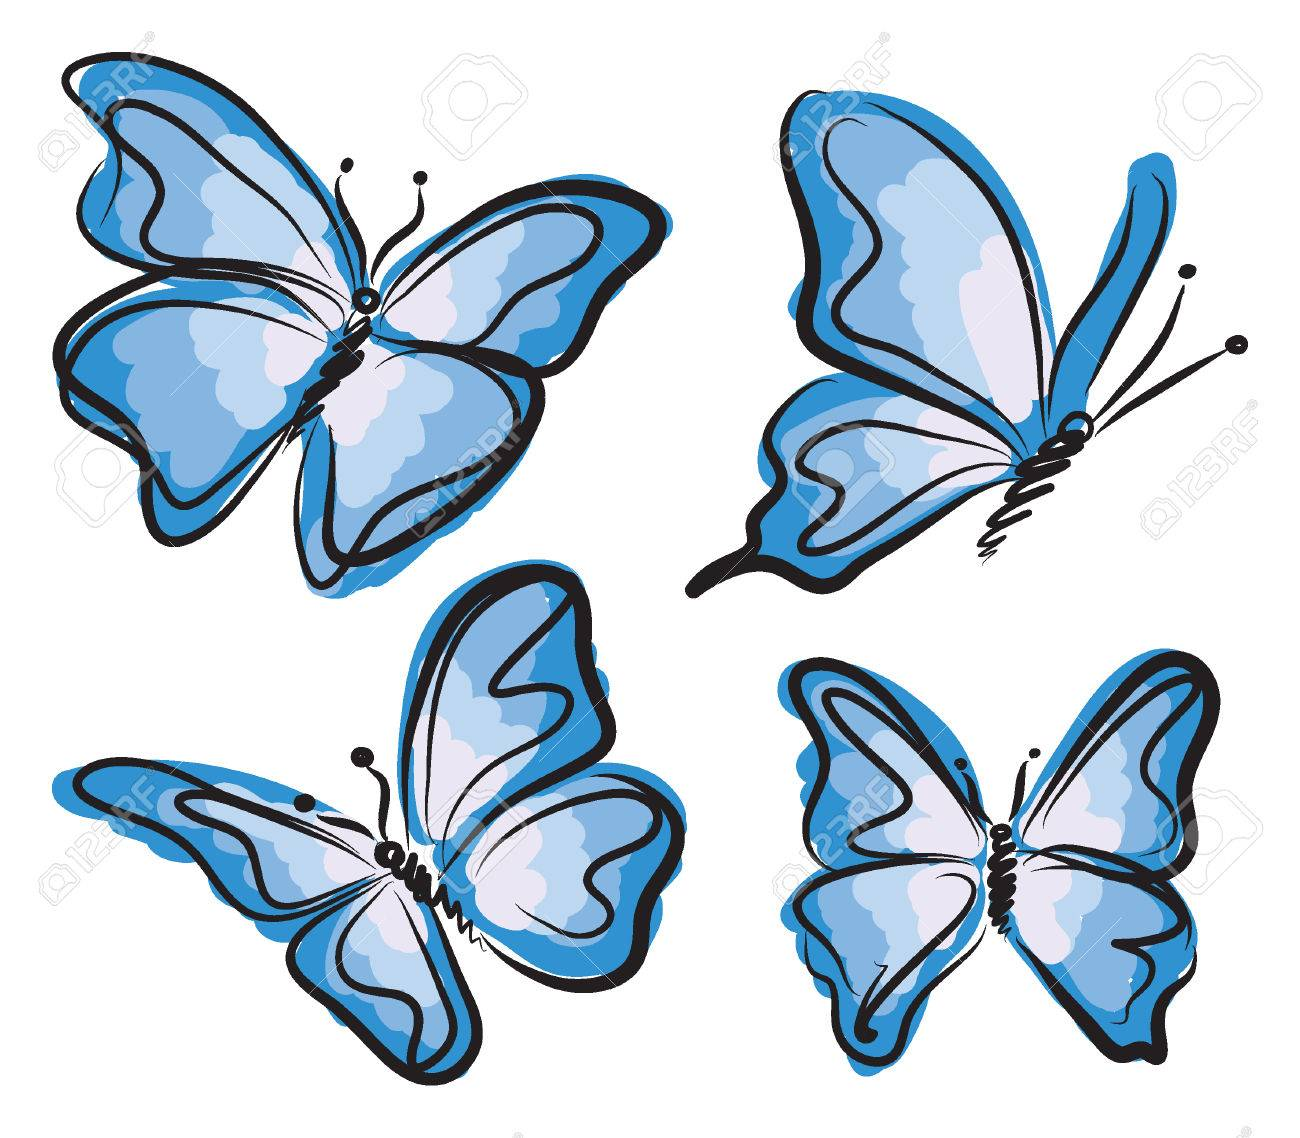 blue butterfly illustration royalty free cliparts vectors and